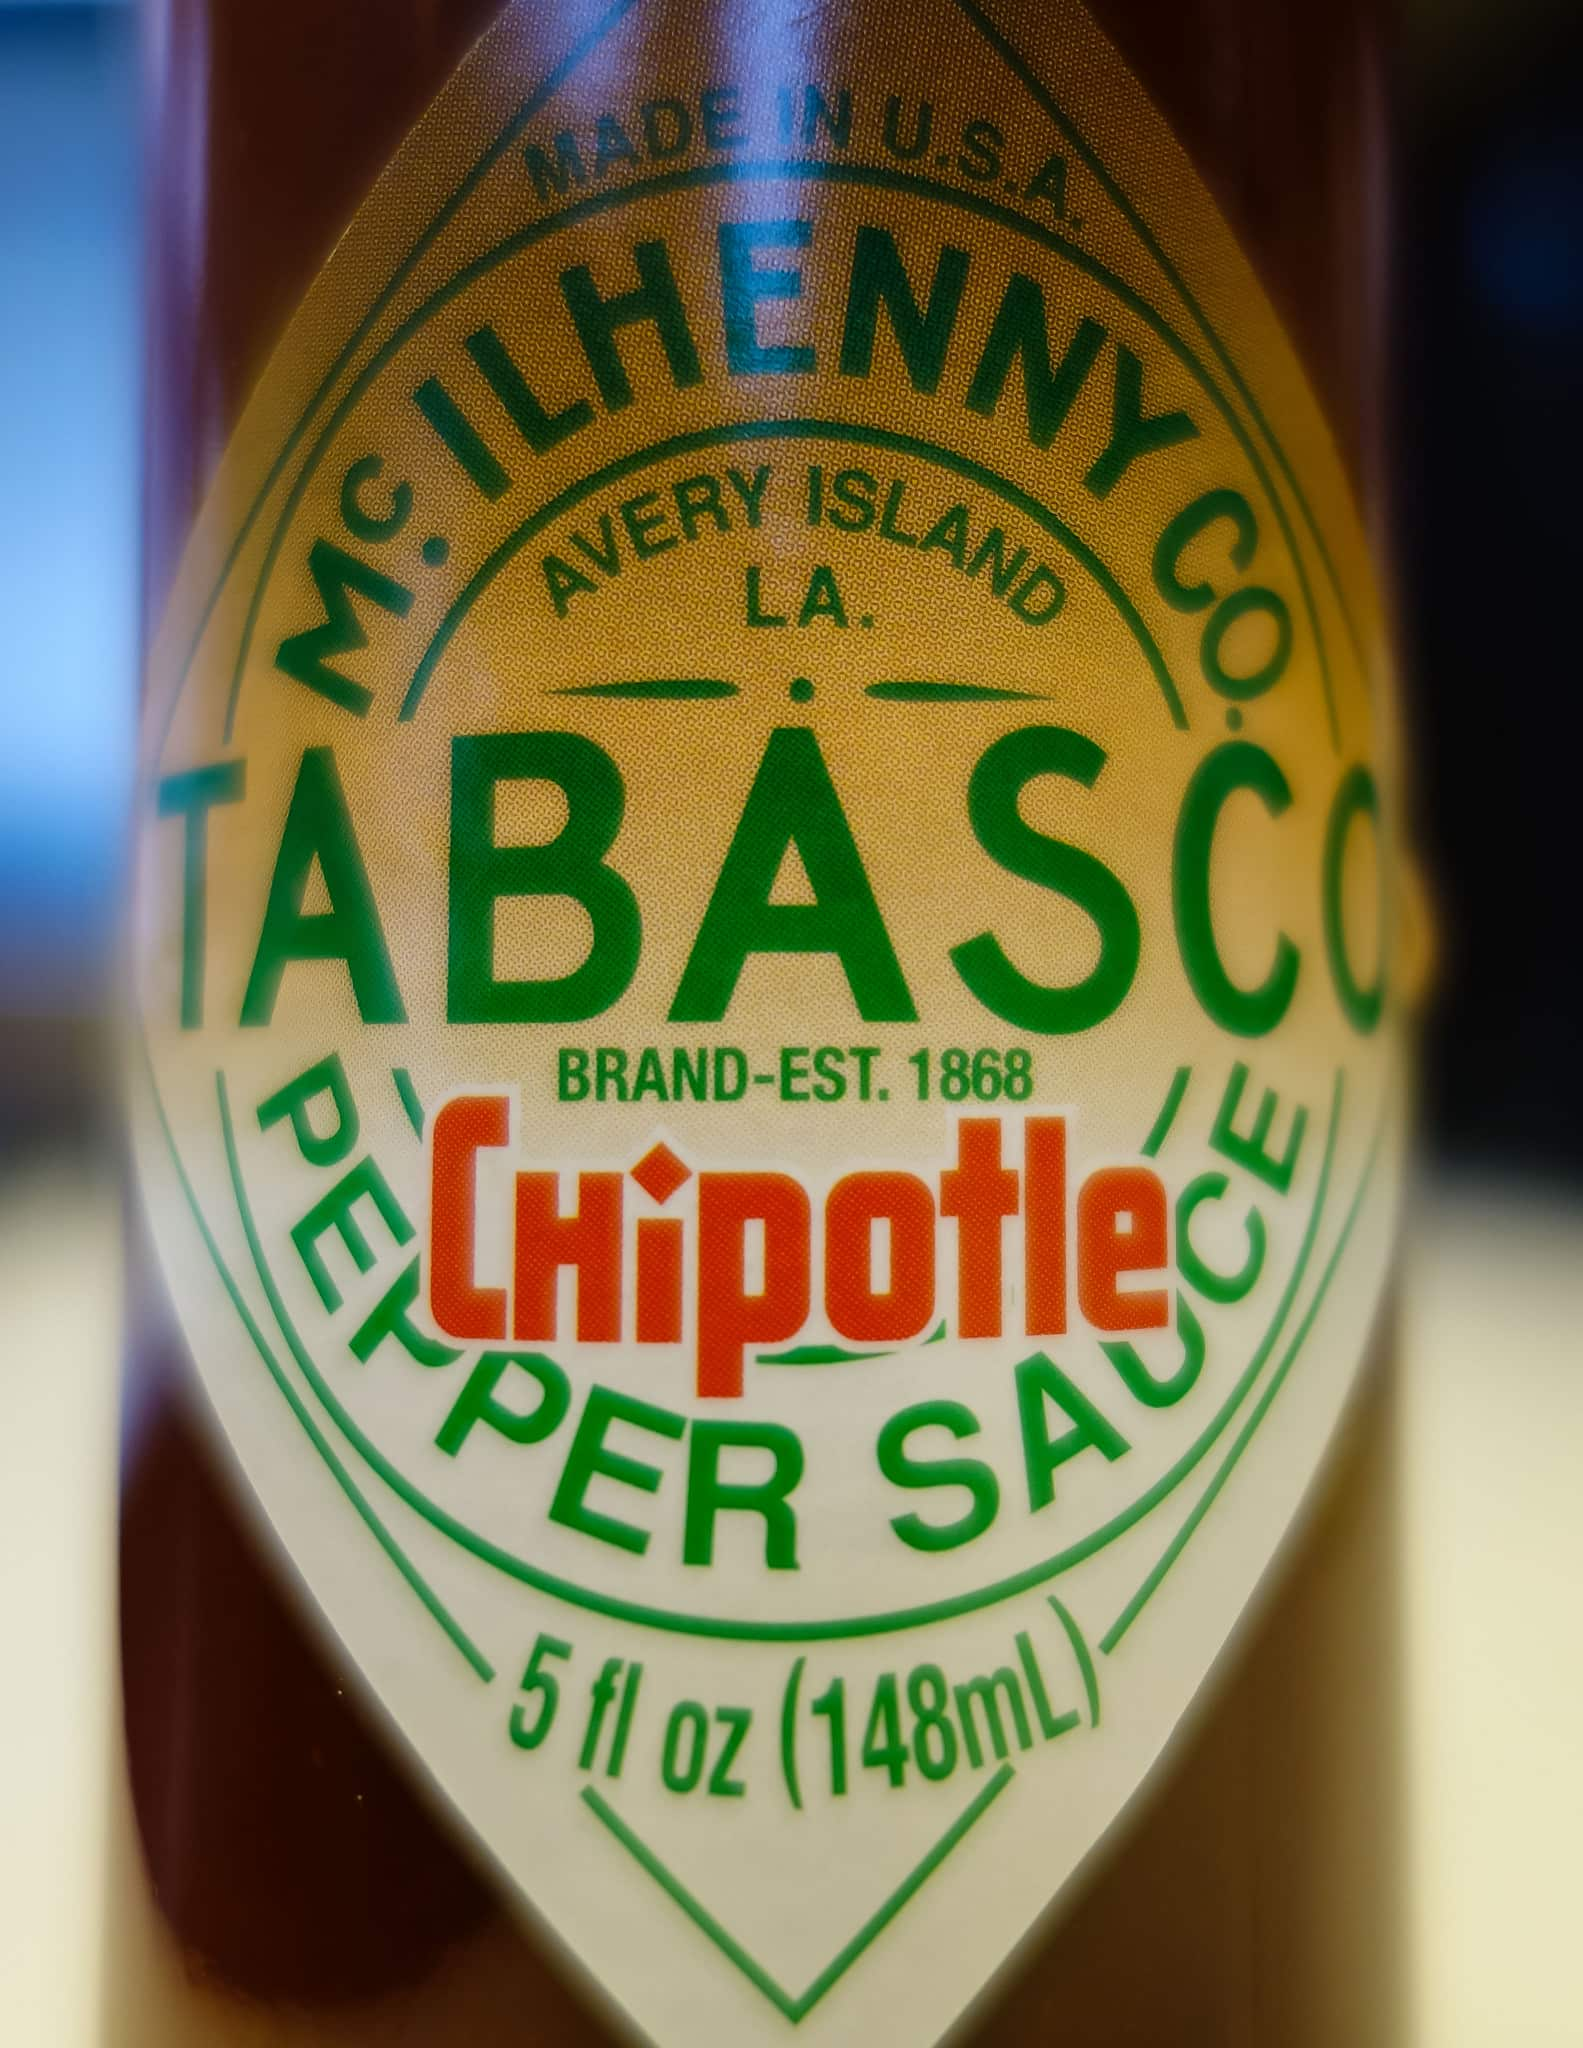 Tabasco Chipotle Sauce Review: Smokin'!